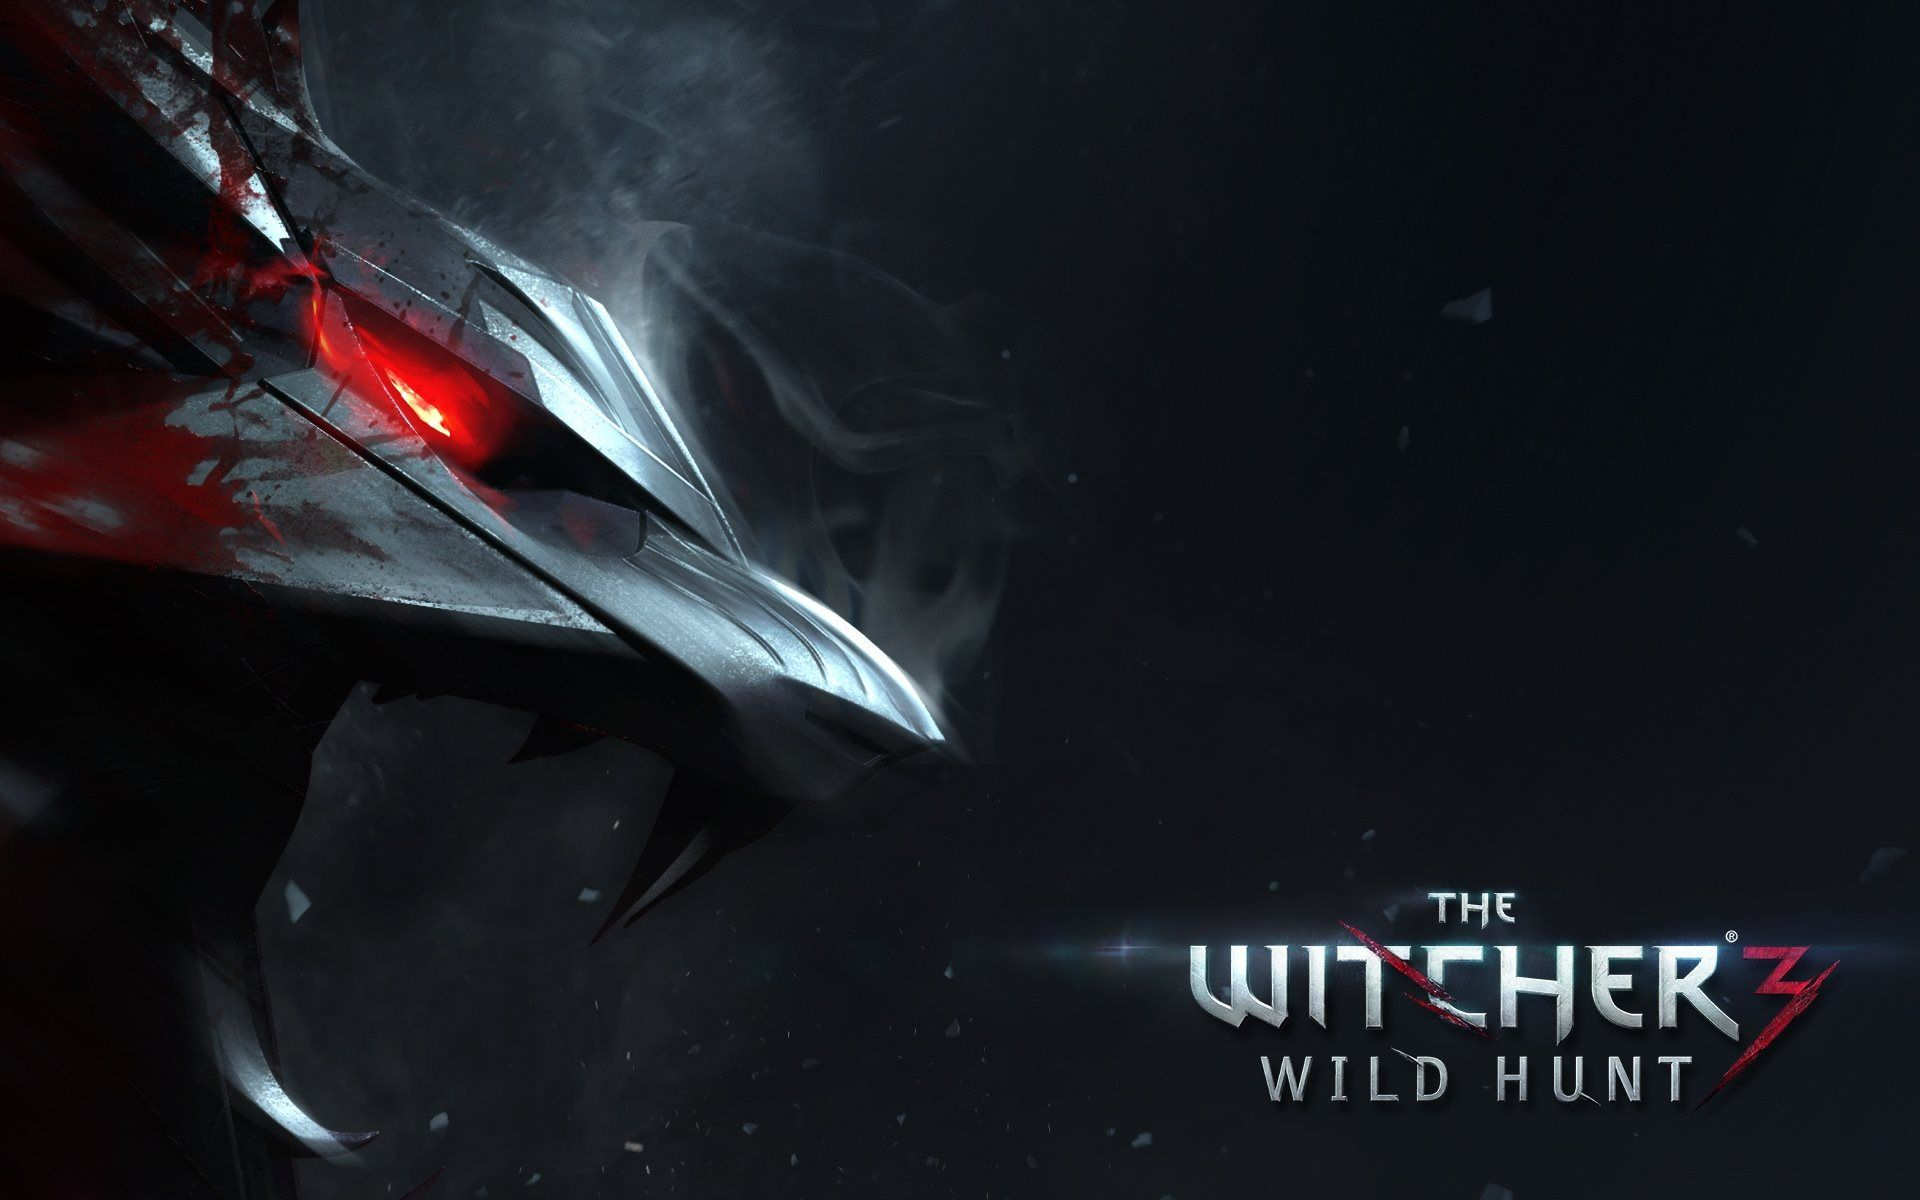 The Witcher 3 Wallpapers Hd Wallpapers En 2019 1366x768